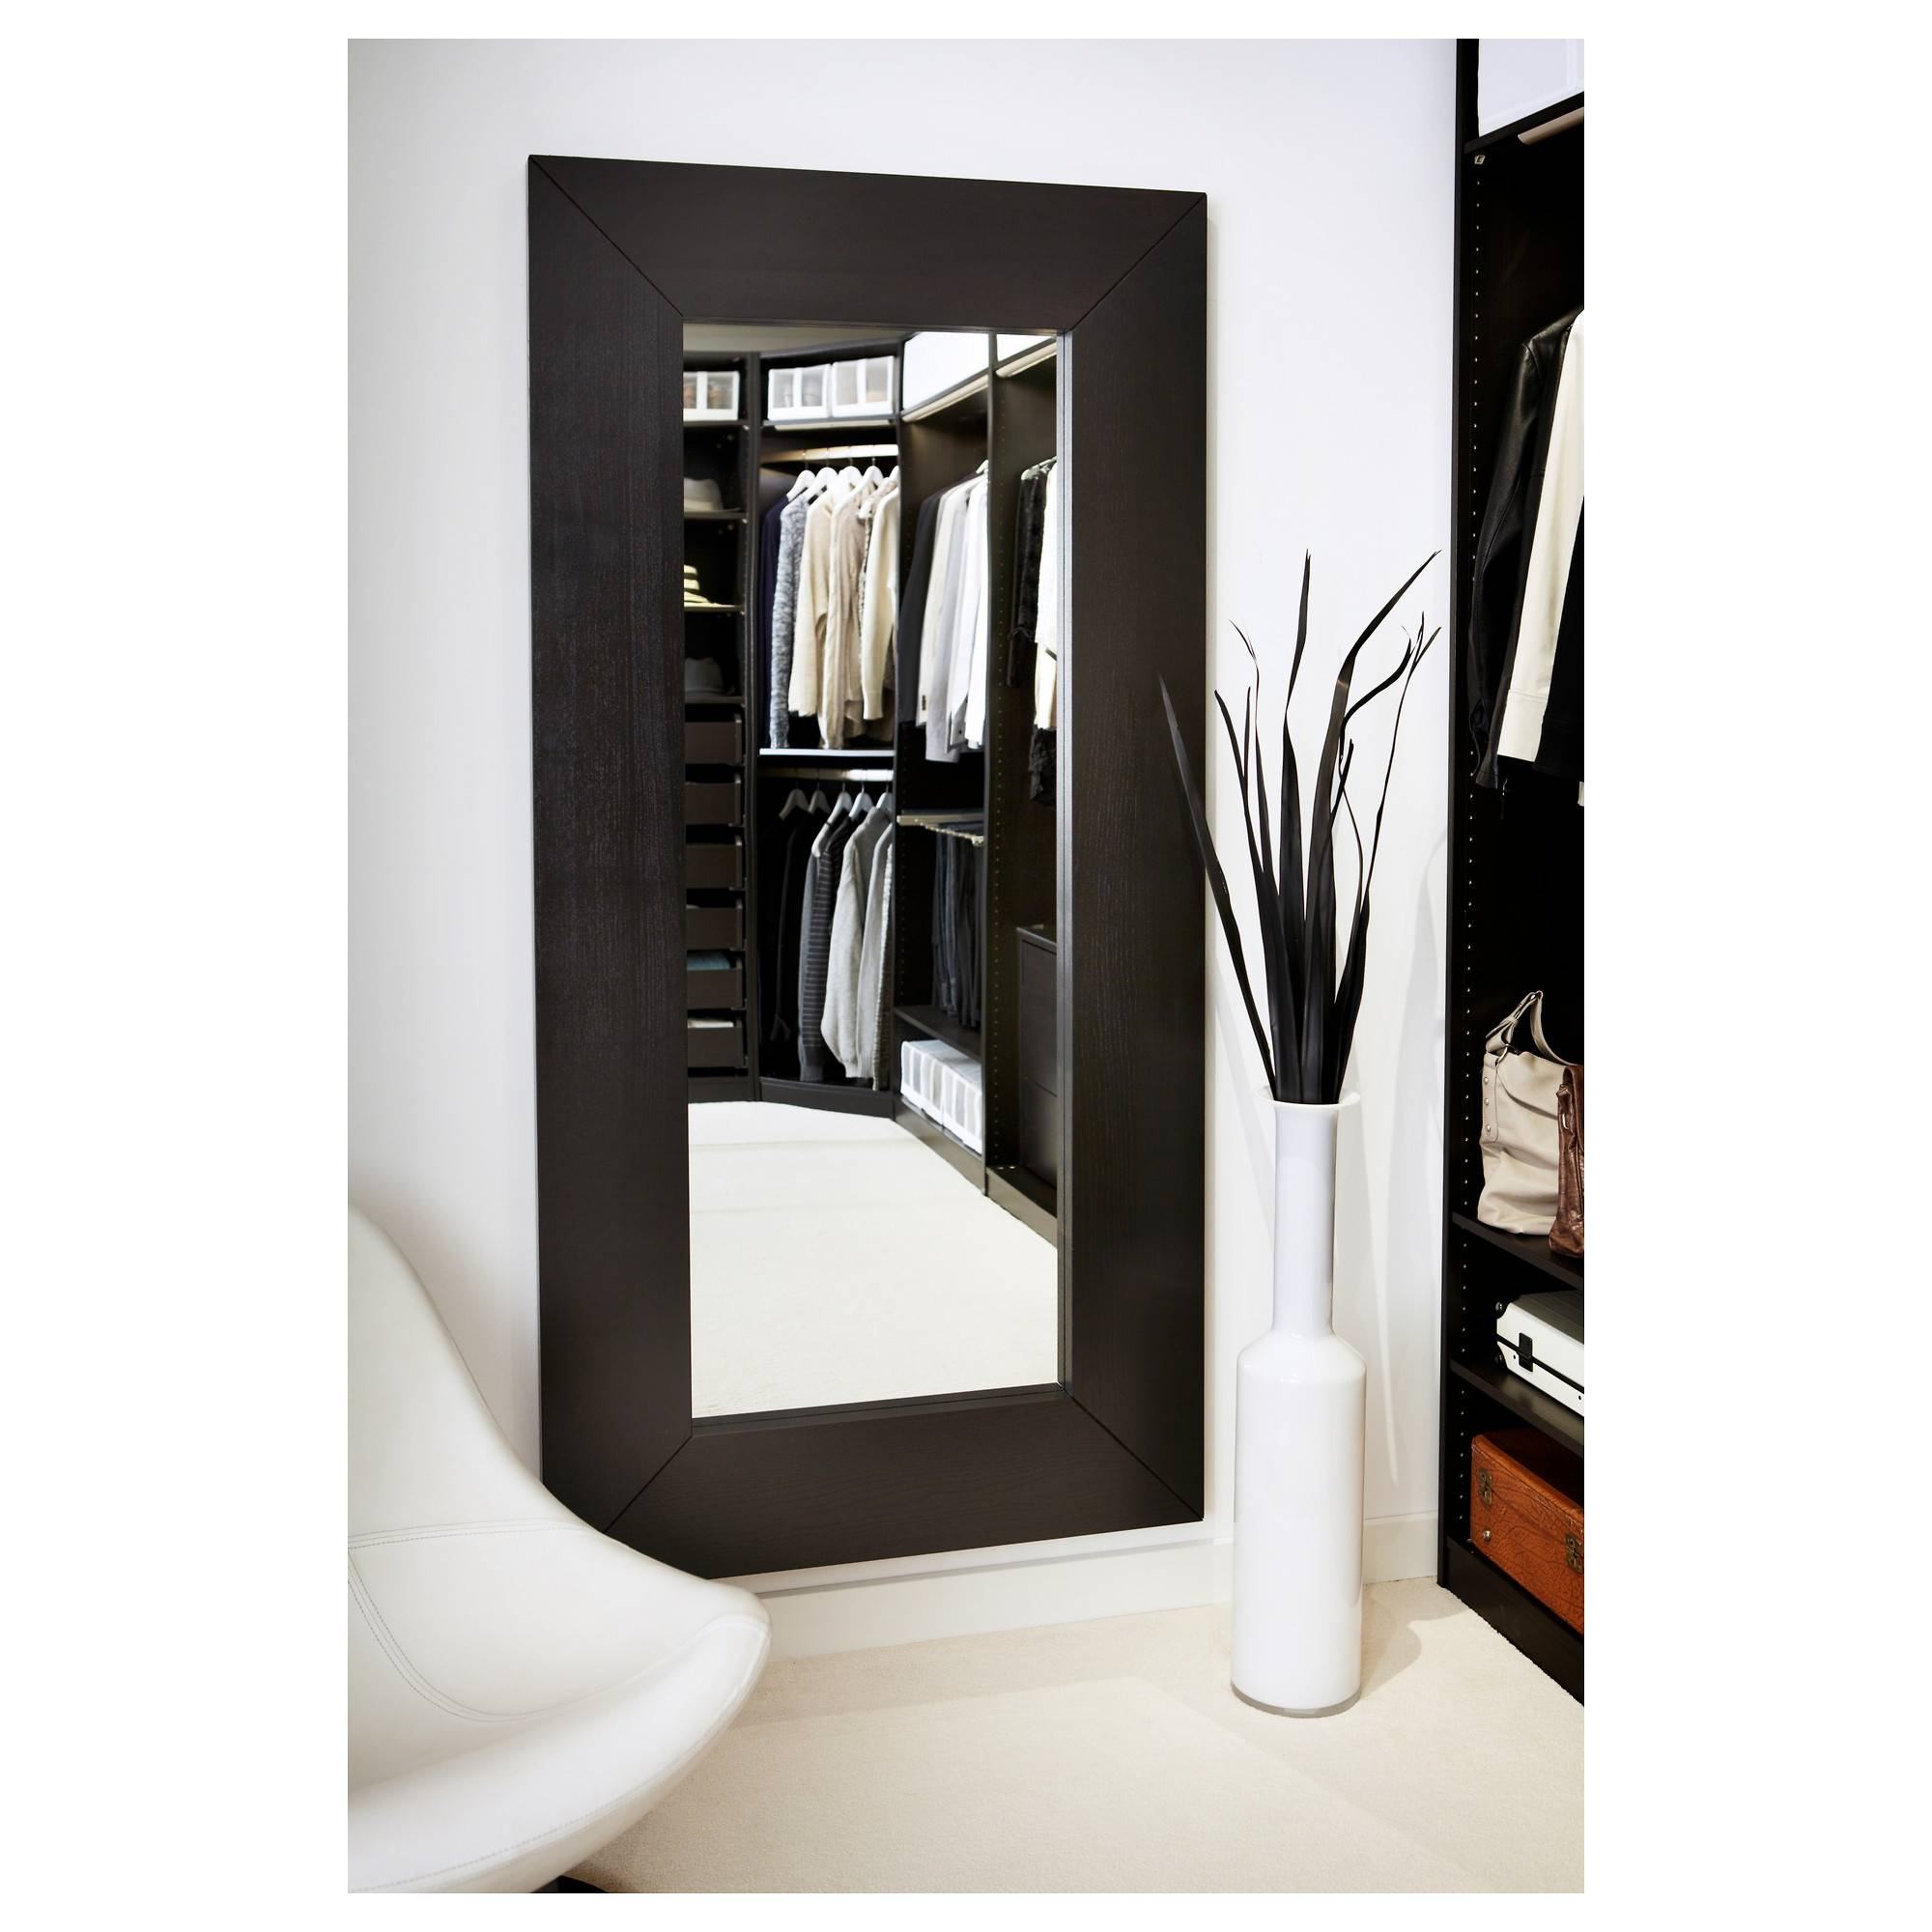 Homeware: Bedroom Full Length Mirrors | Floor Length Mirrors with Big Standing Mirrors (Image 12 of 15)